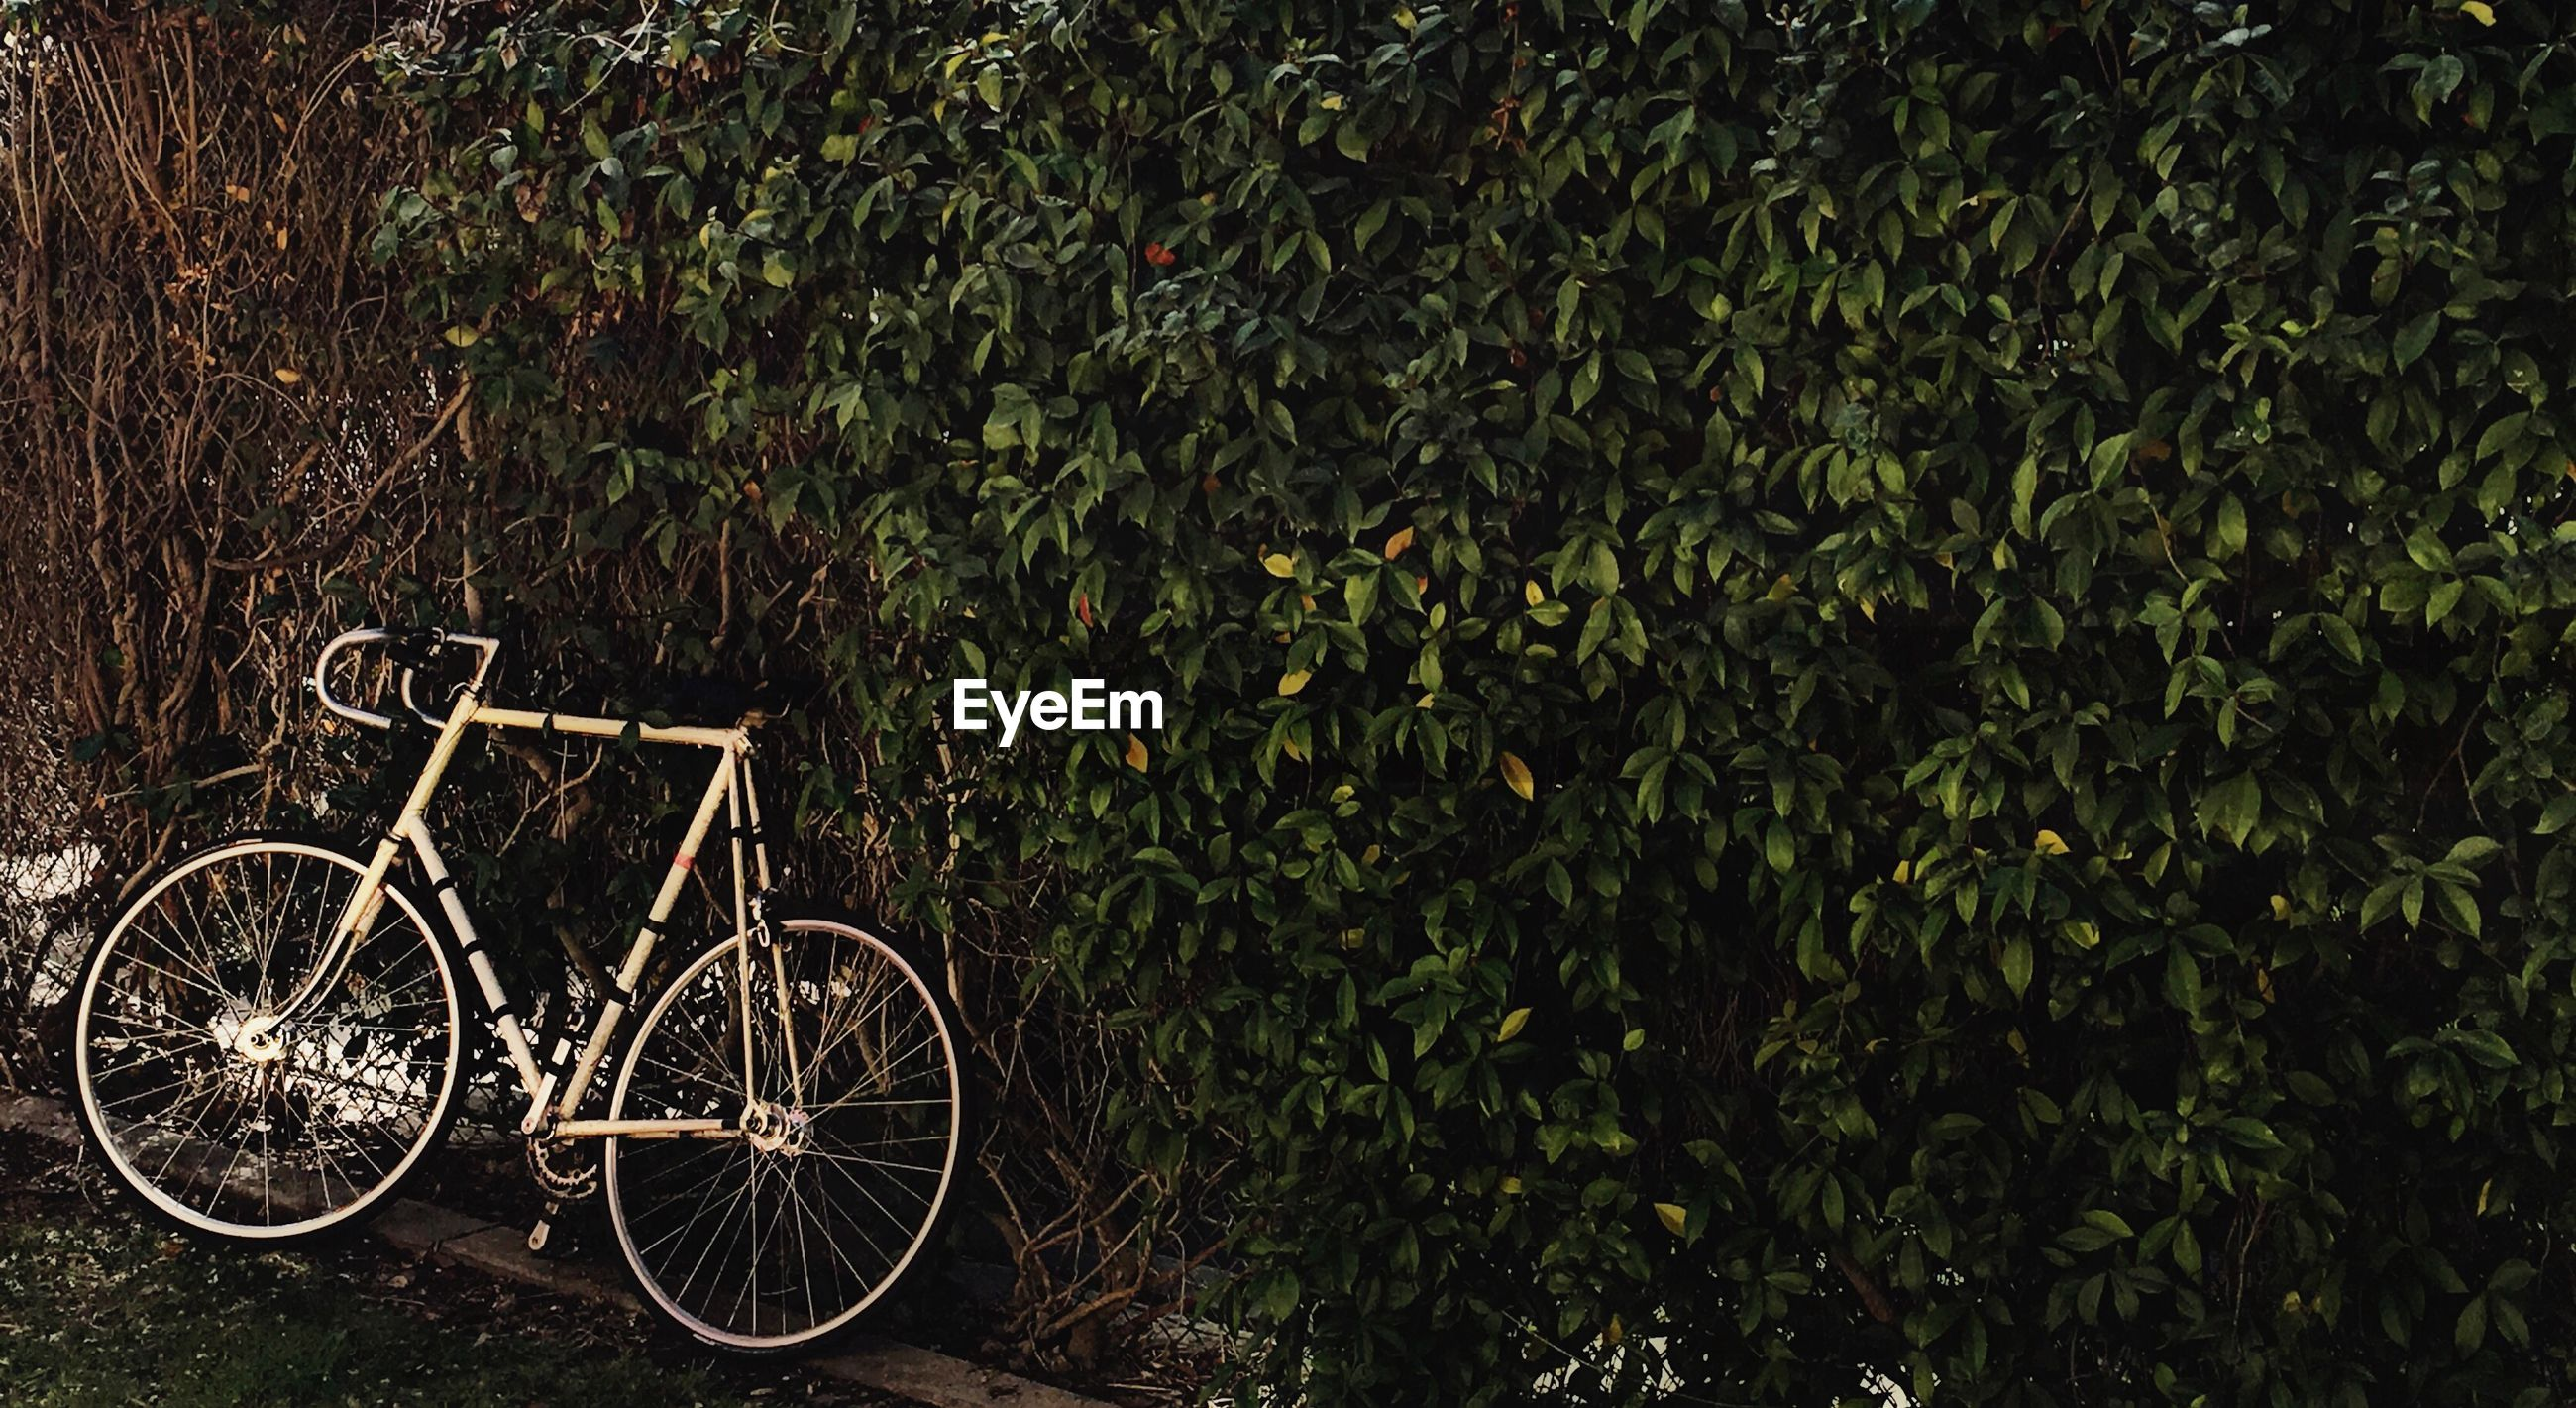 Bicycle parked by trees